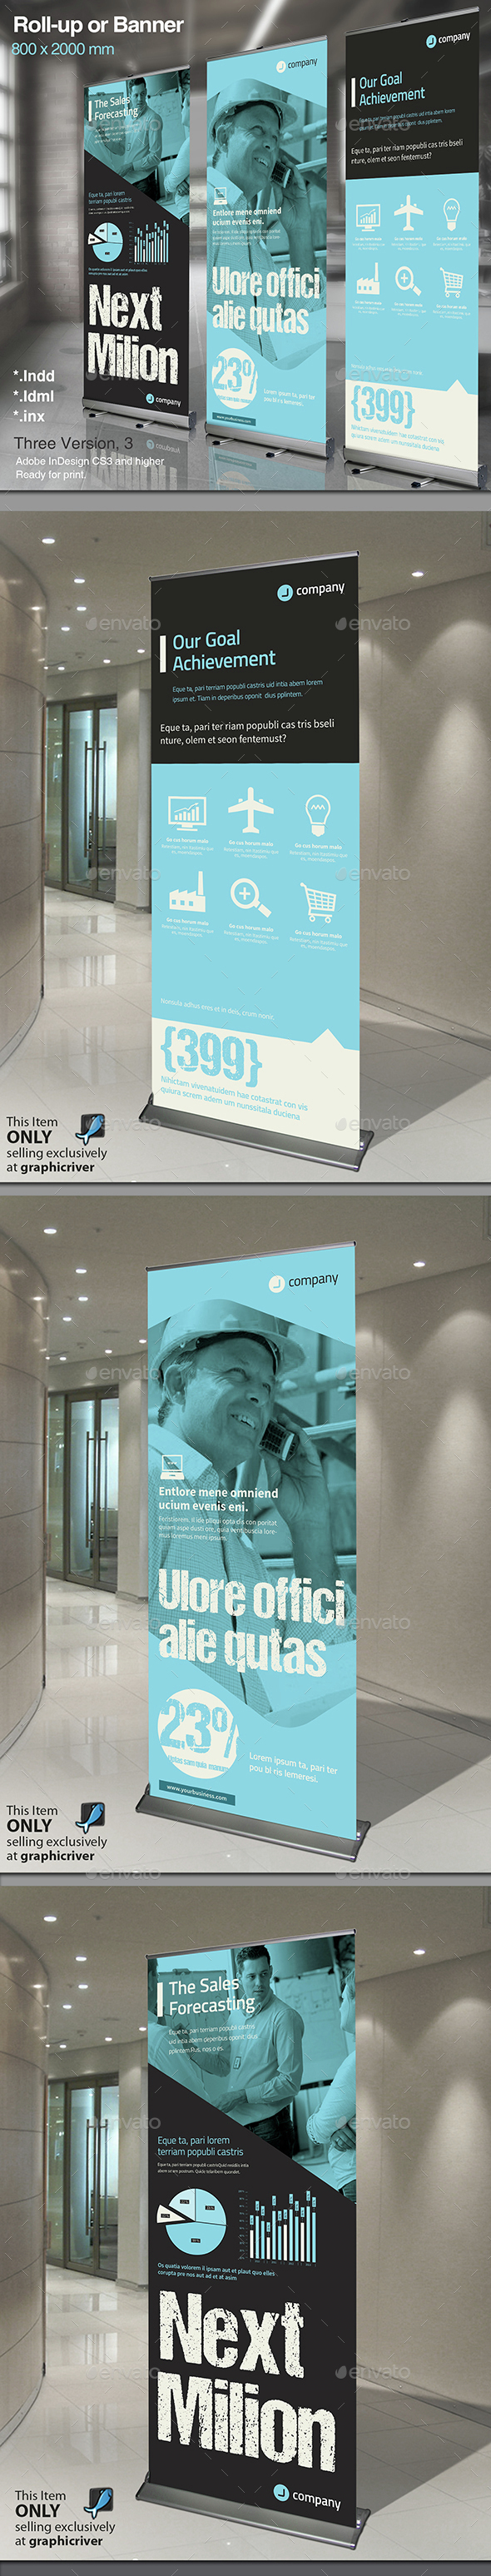 Corporate Roll-up or Banner Vol. 4 - Signage Print Templates